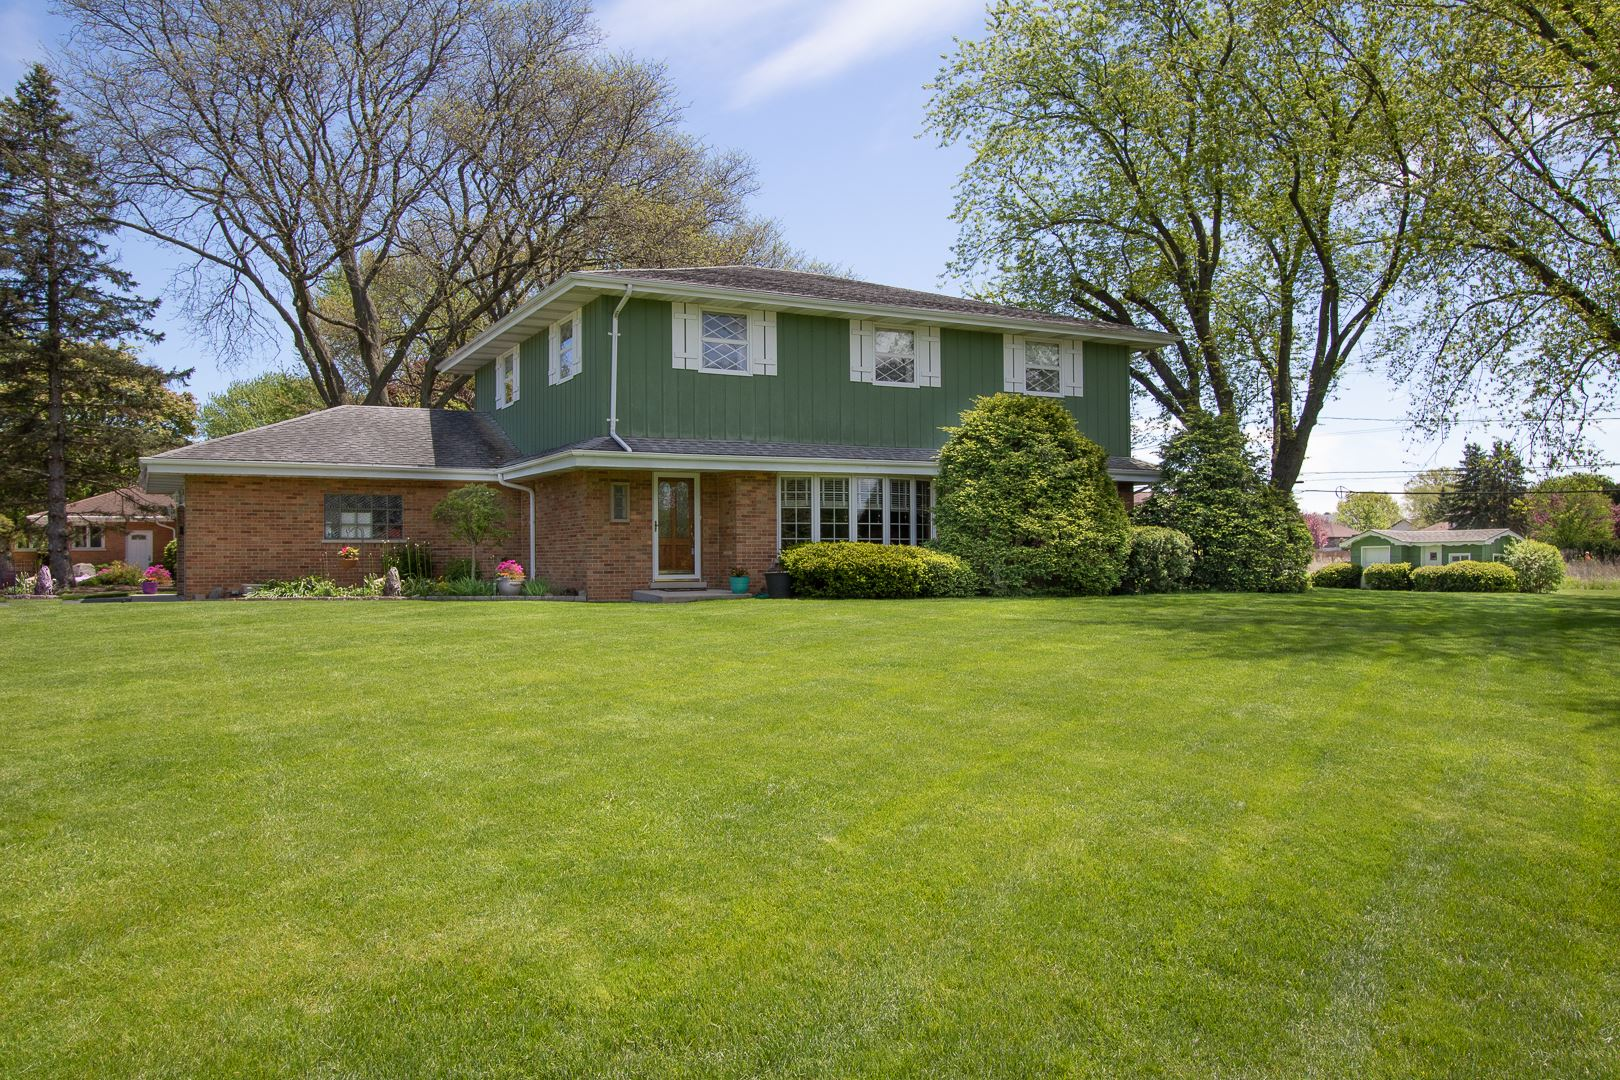 23 S Wildwood Drive, Prospect Heights, IL 60070 - #: 10723498